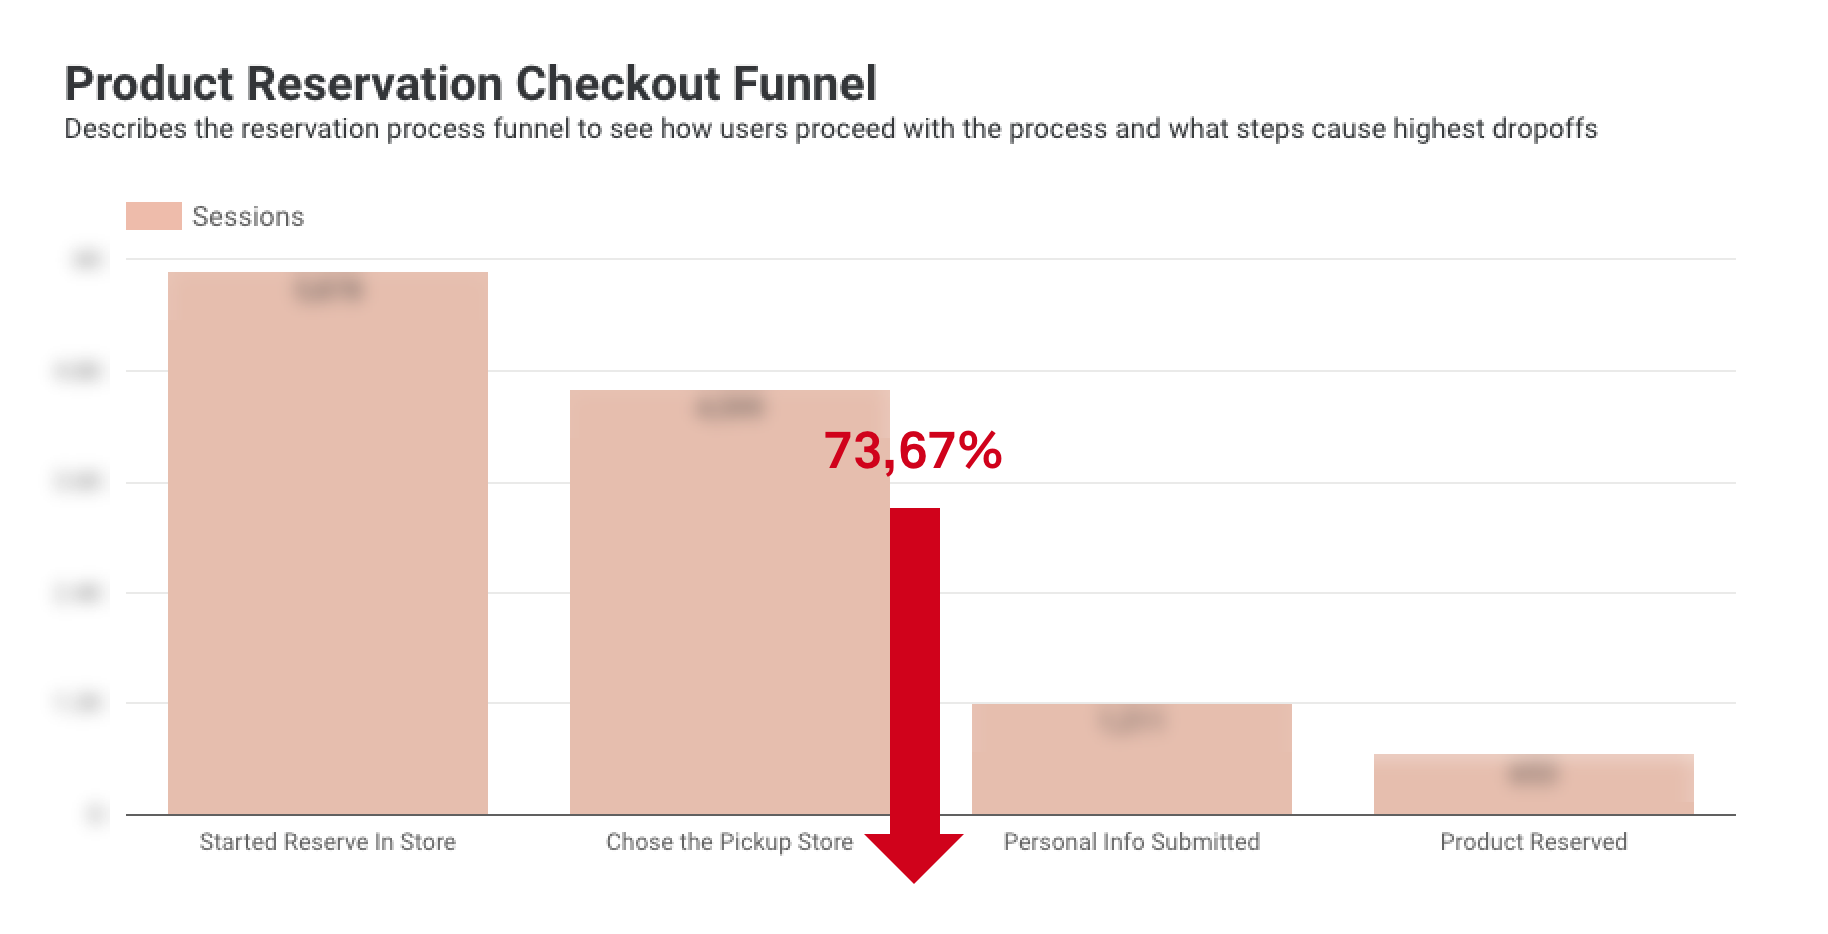 Product Reservation Checkout Funnel